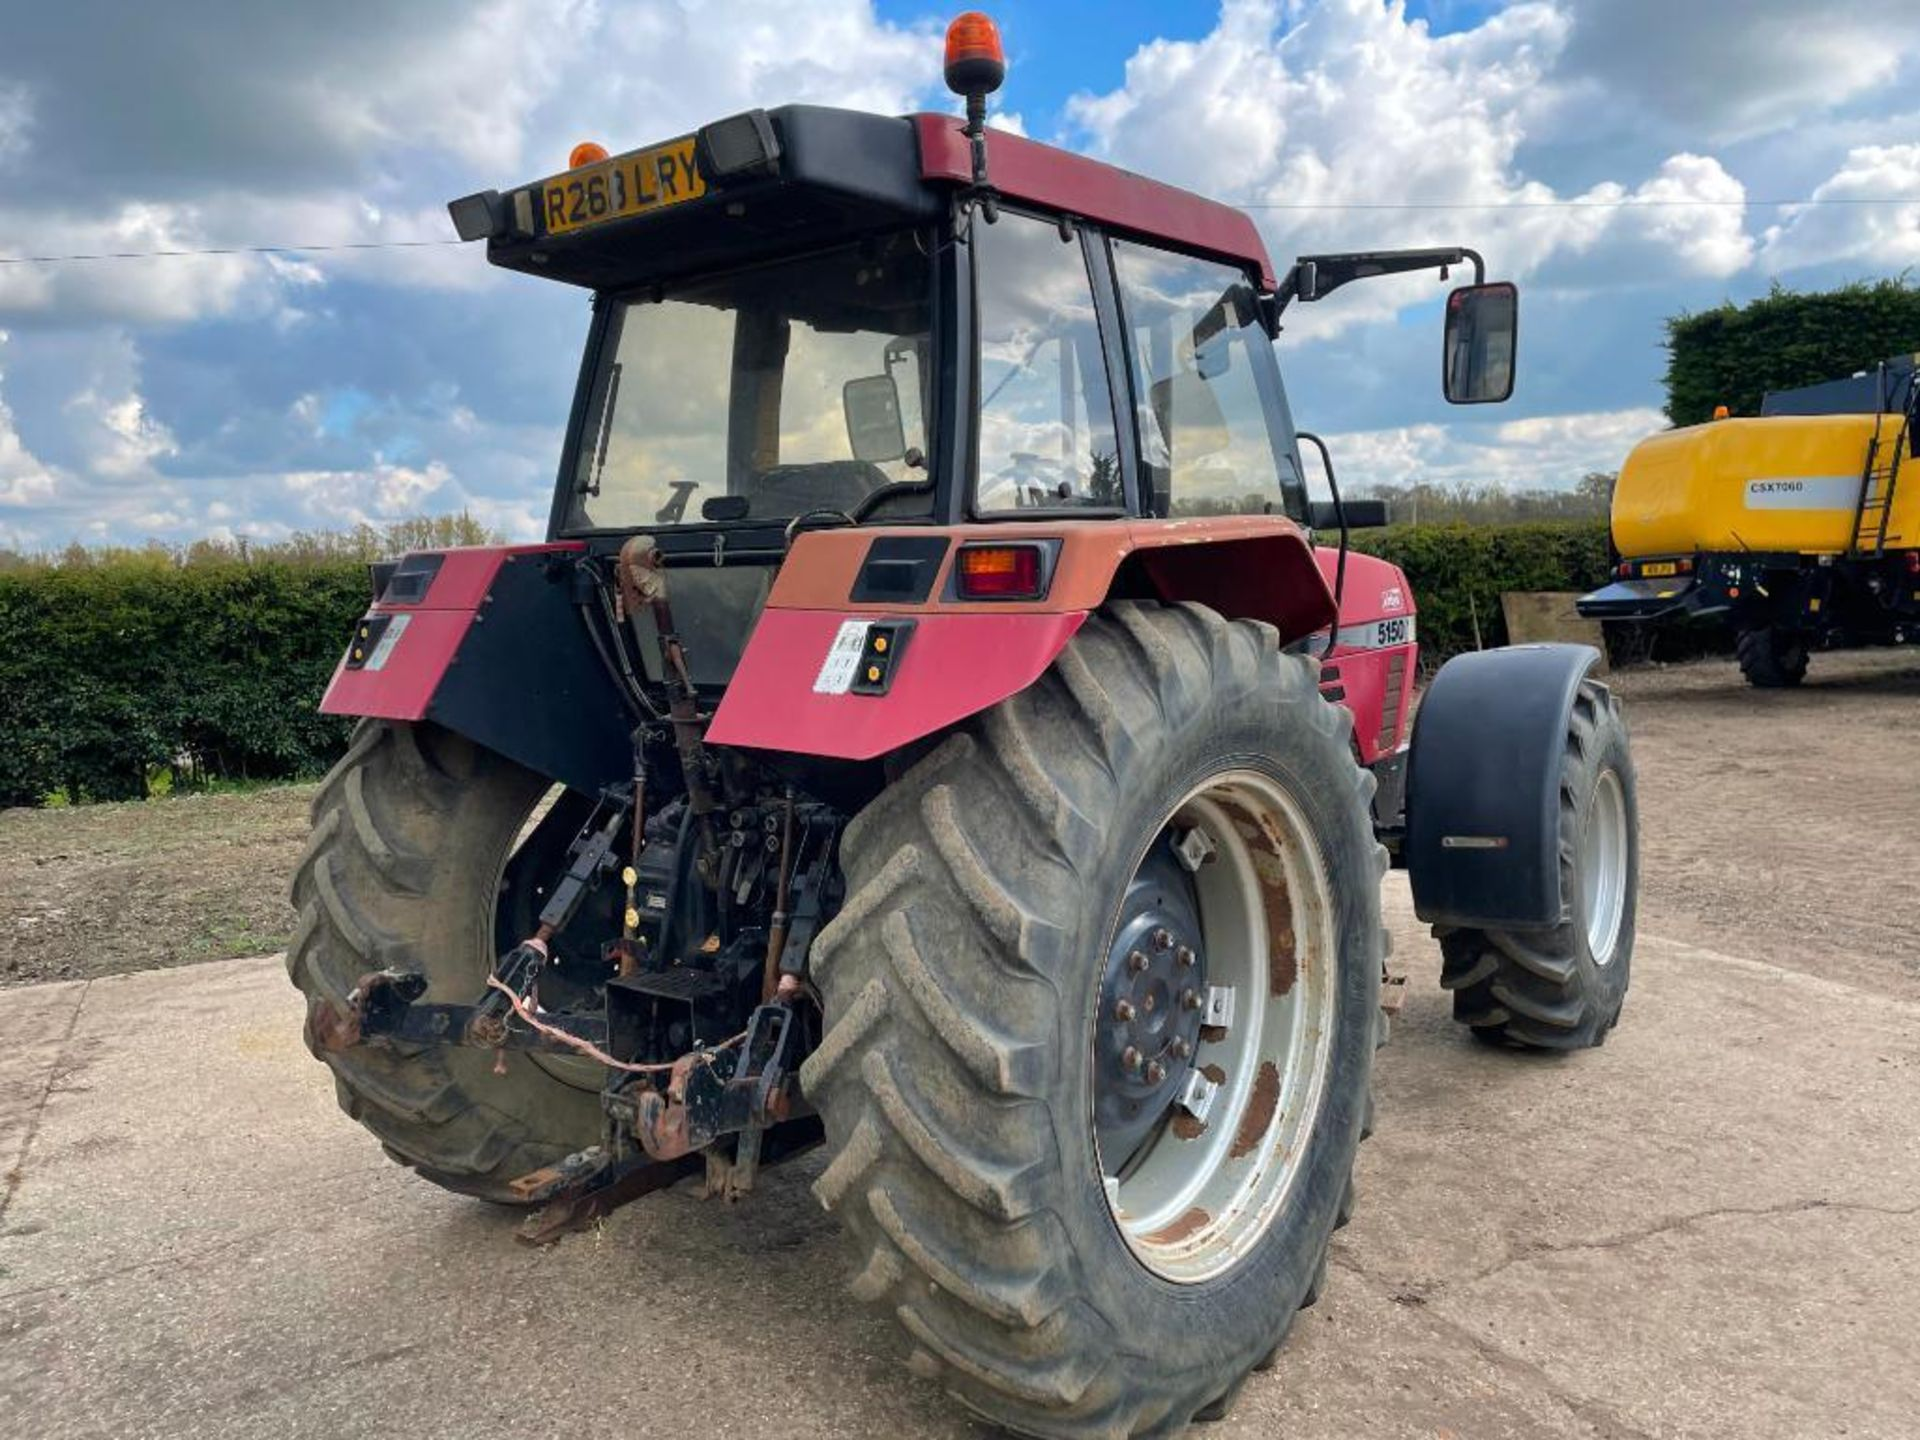 1997 Case IH 5150 Maxxum Plus Powershift 4wd tractor with 2 spools, PUH and front wafer weights on 1 - Image 9 of 13